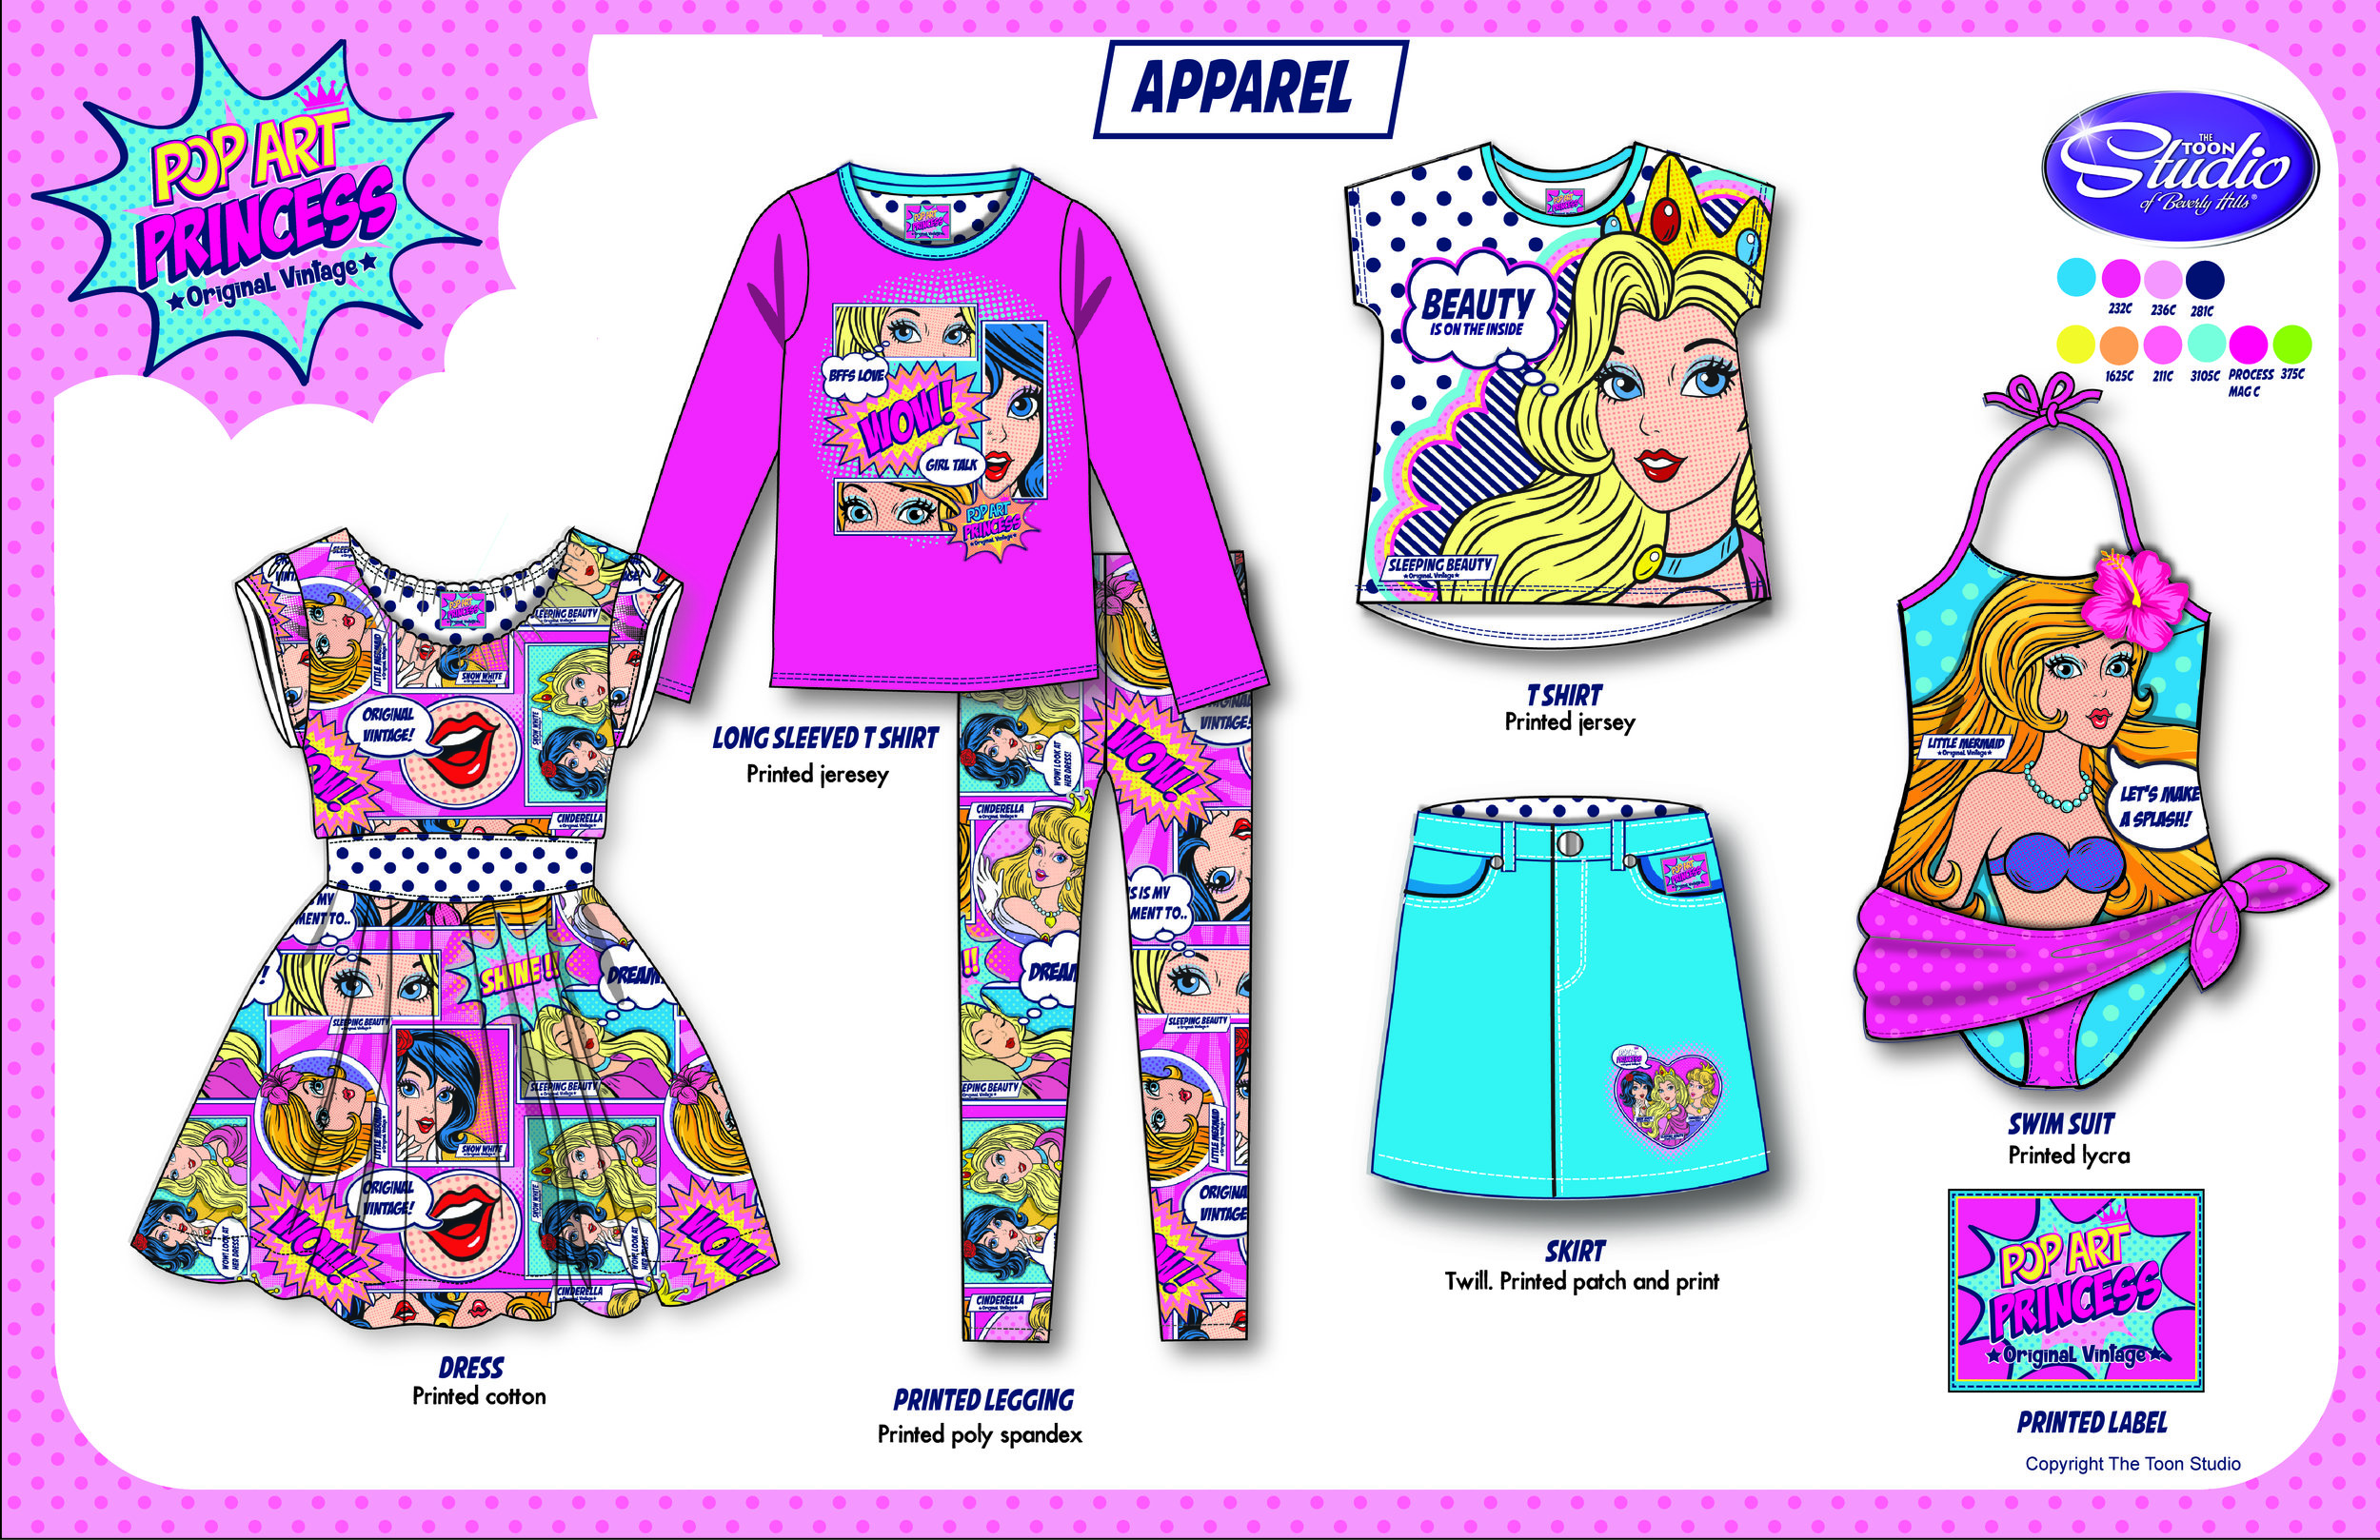 Copy of Copy of Pop Art Princess Style guide -Apparel